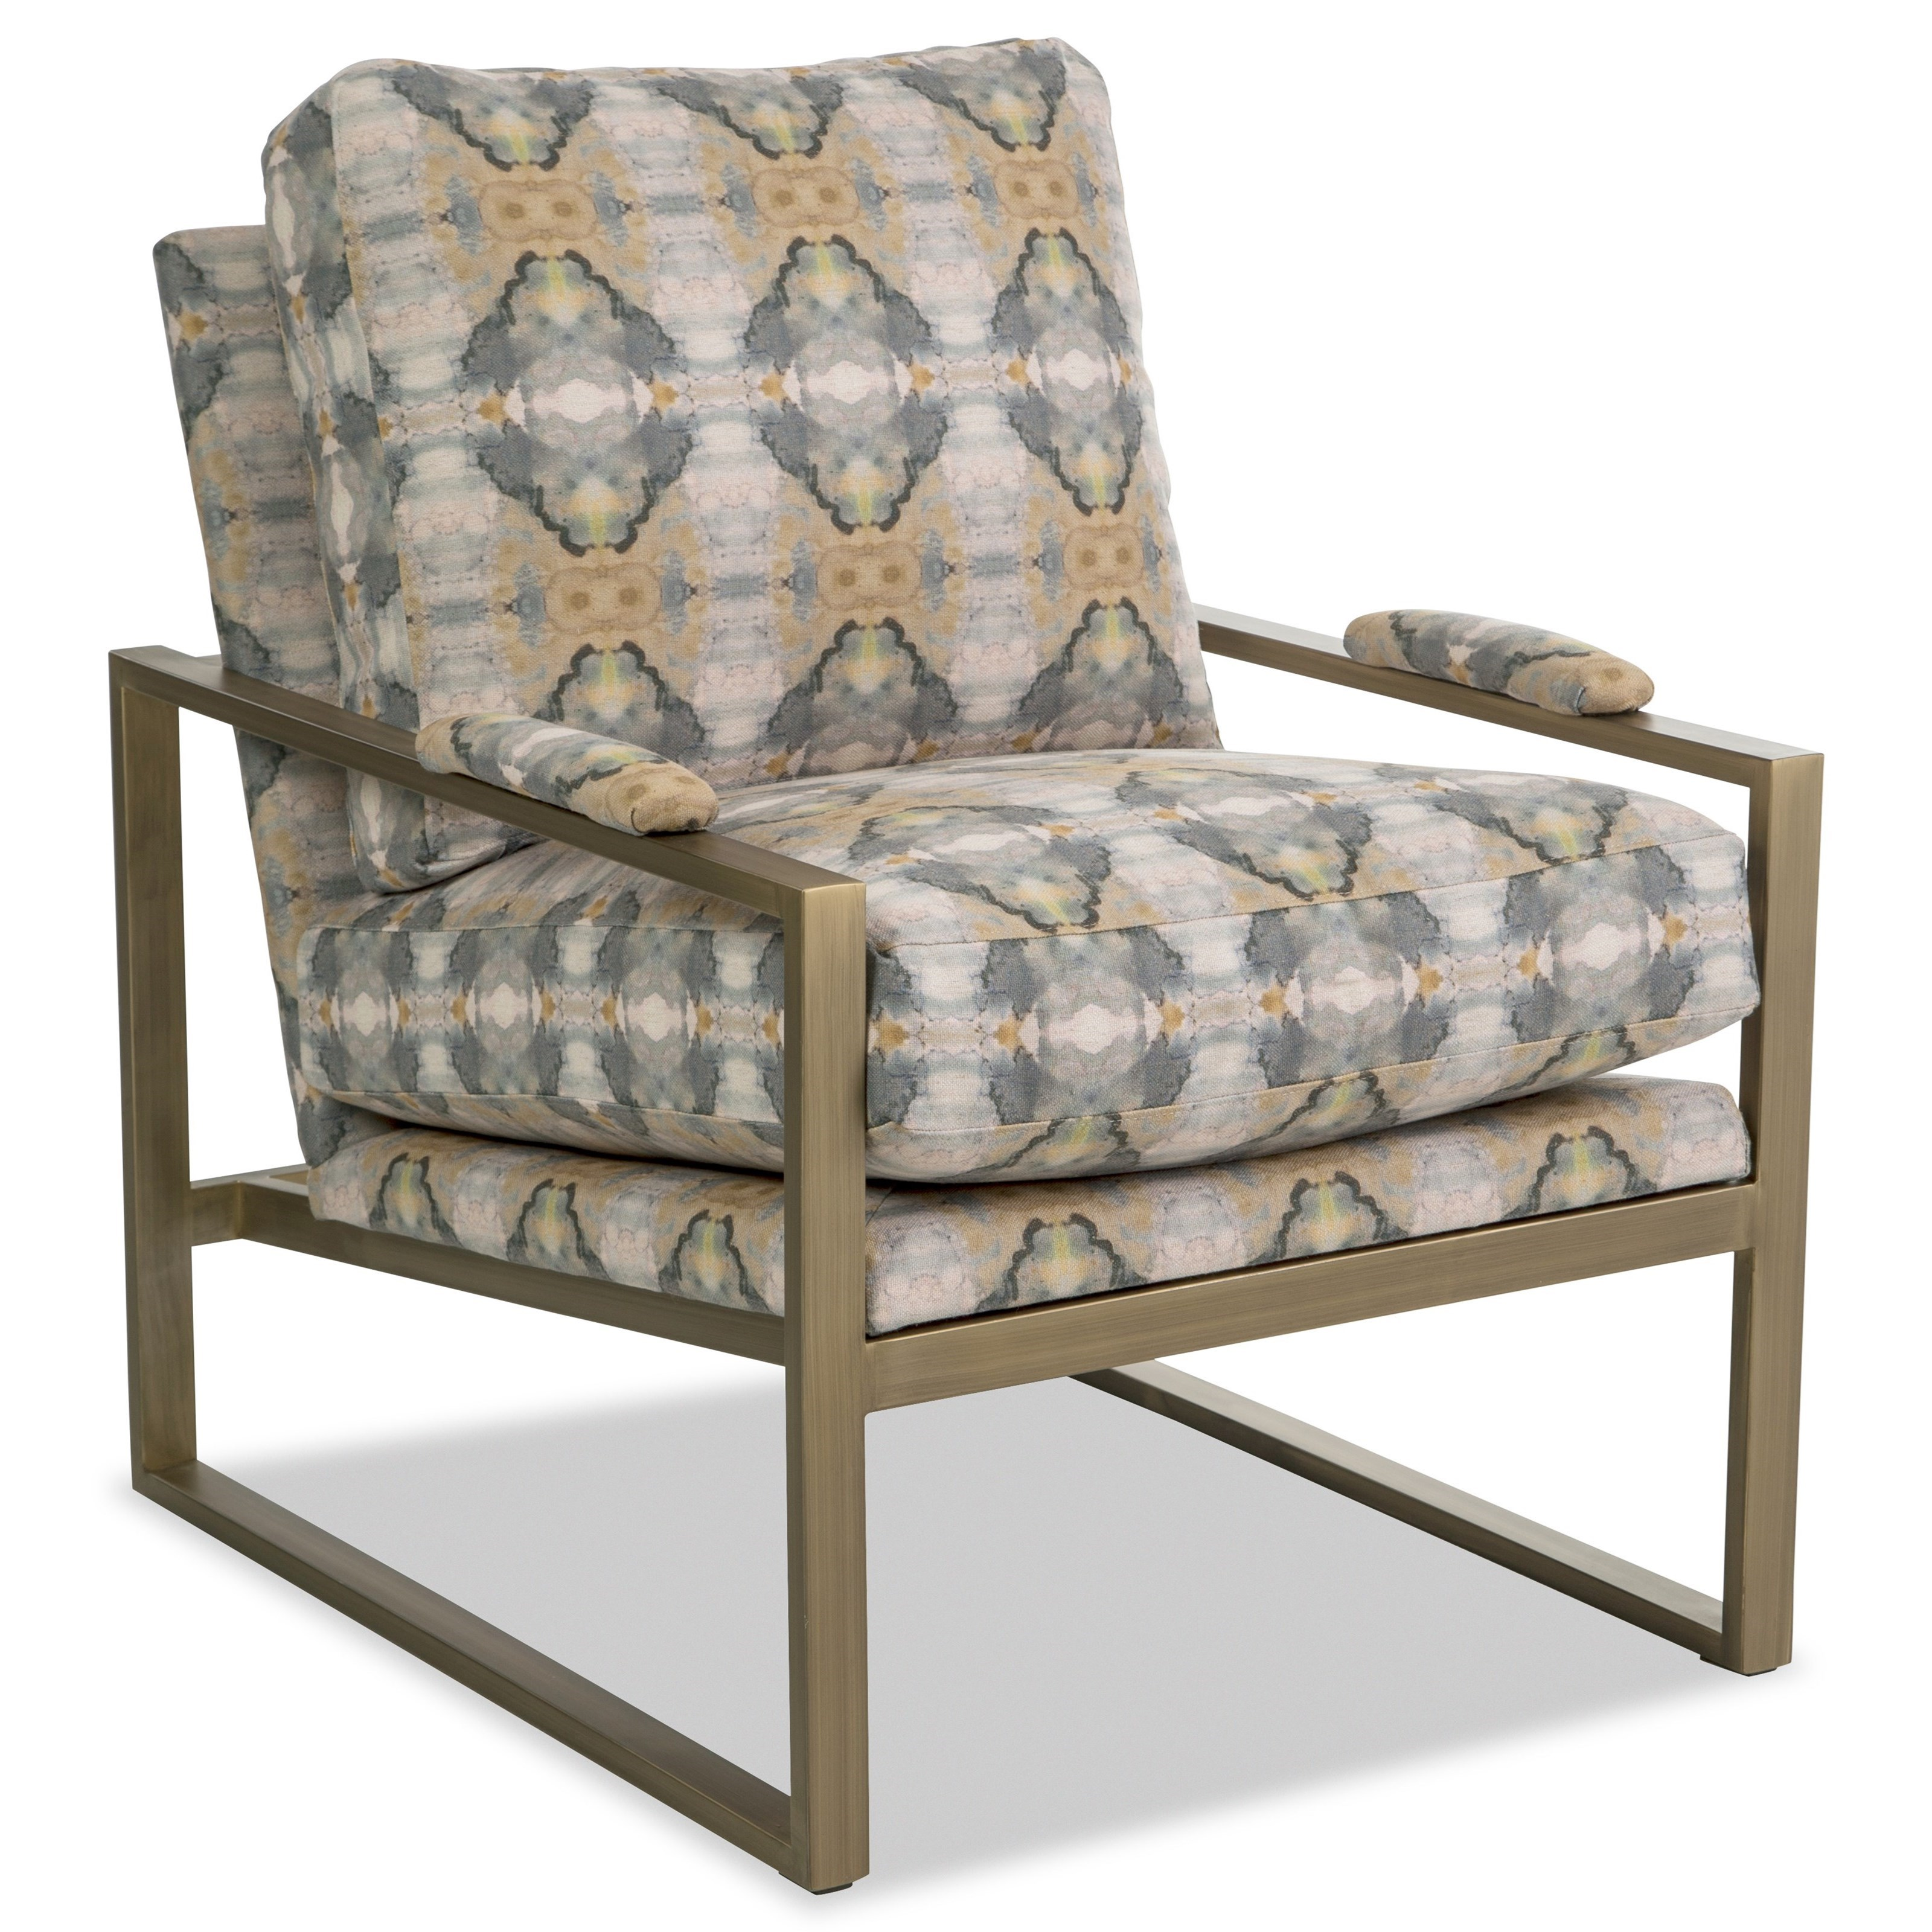 082810 Chair by Hickory Craft at Godby Home Furnishings